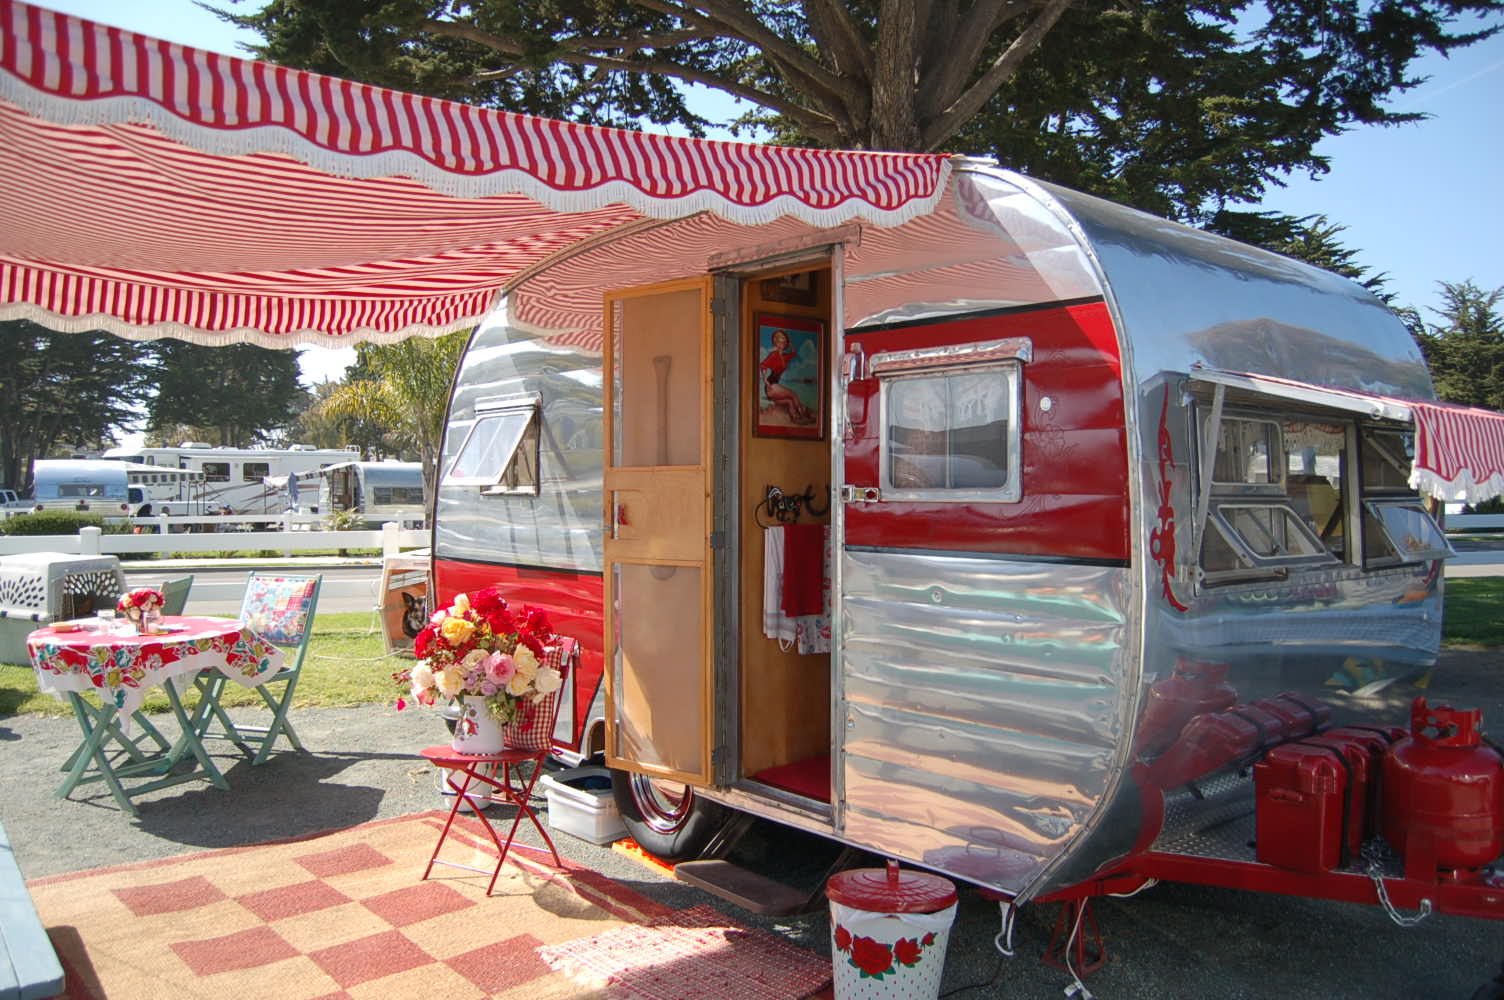 Close Up Picture Of A 1954 Dalton Vintage Trailer With Red And White Striped Awning